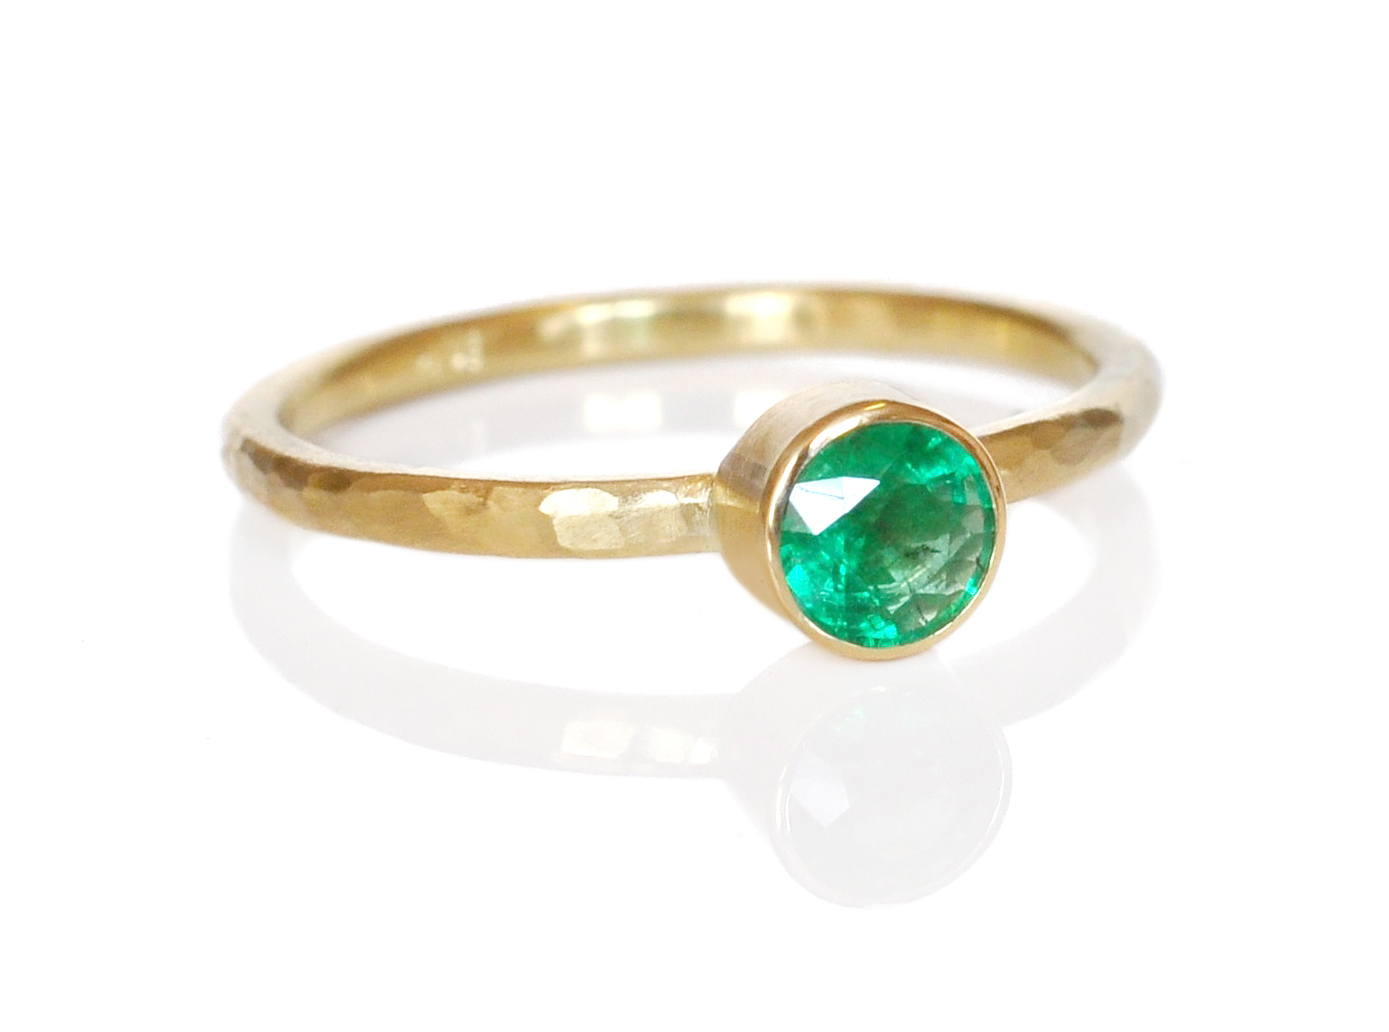 A brilliant cut emerald bezel set in 14k yellow gold on a hand-hammered round band.